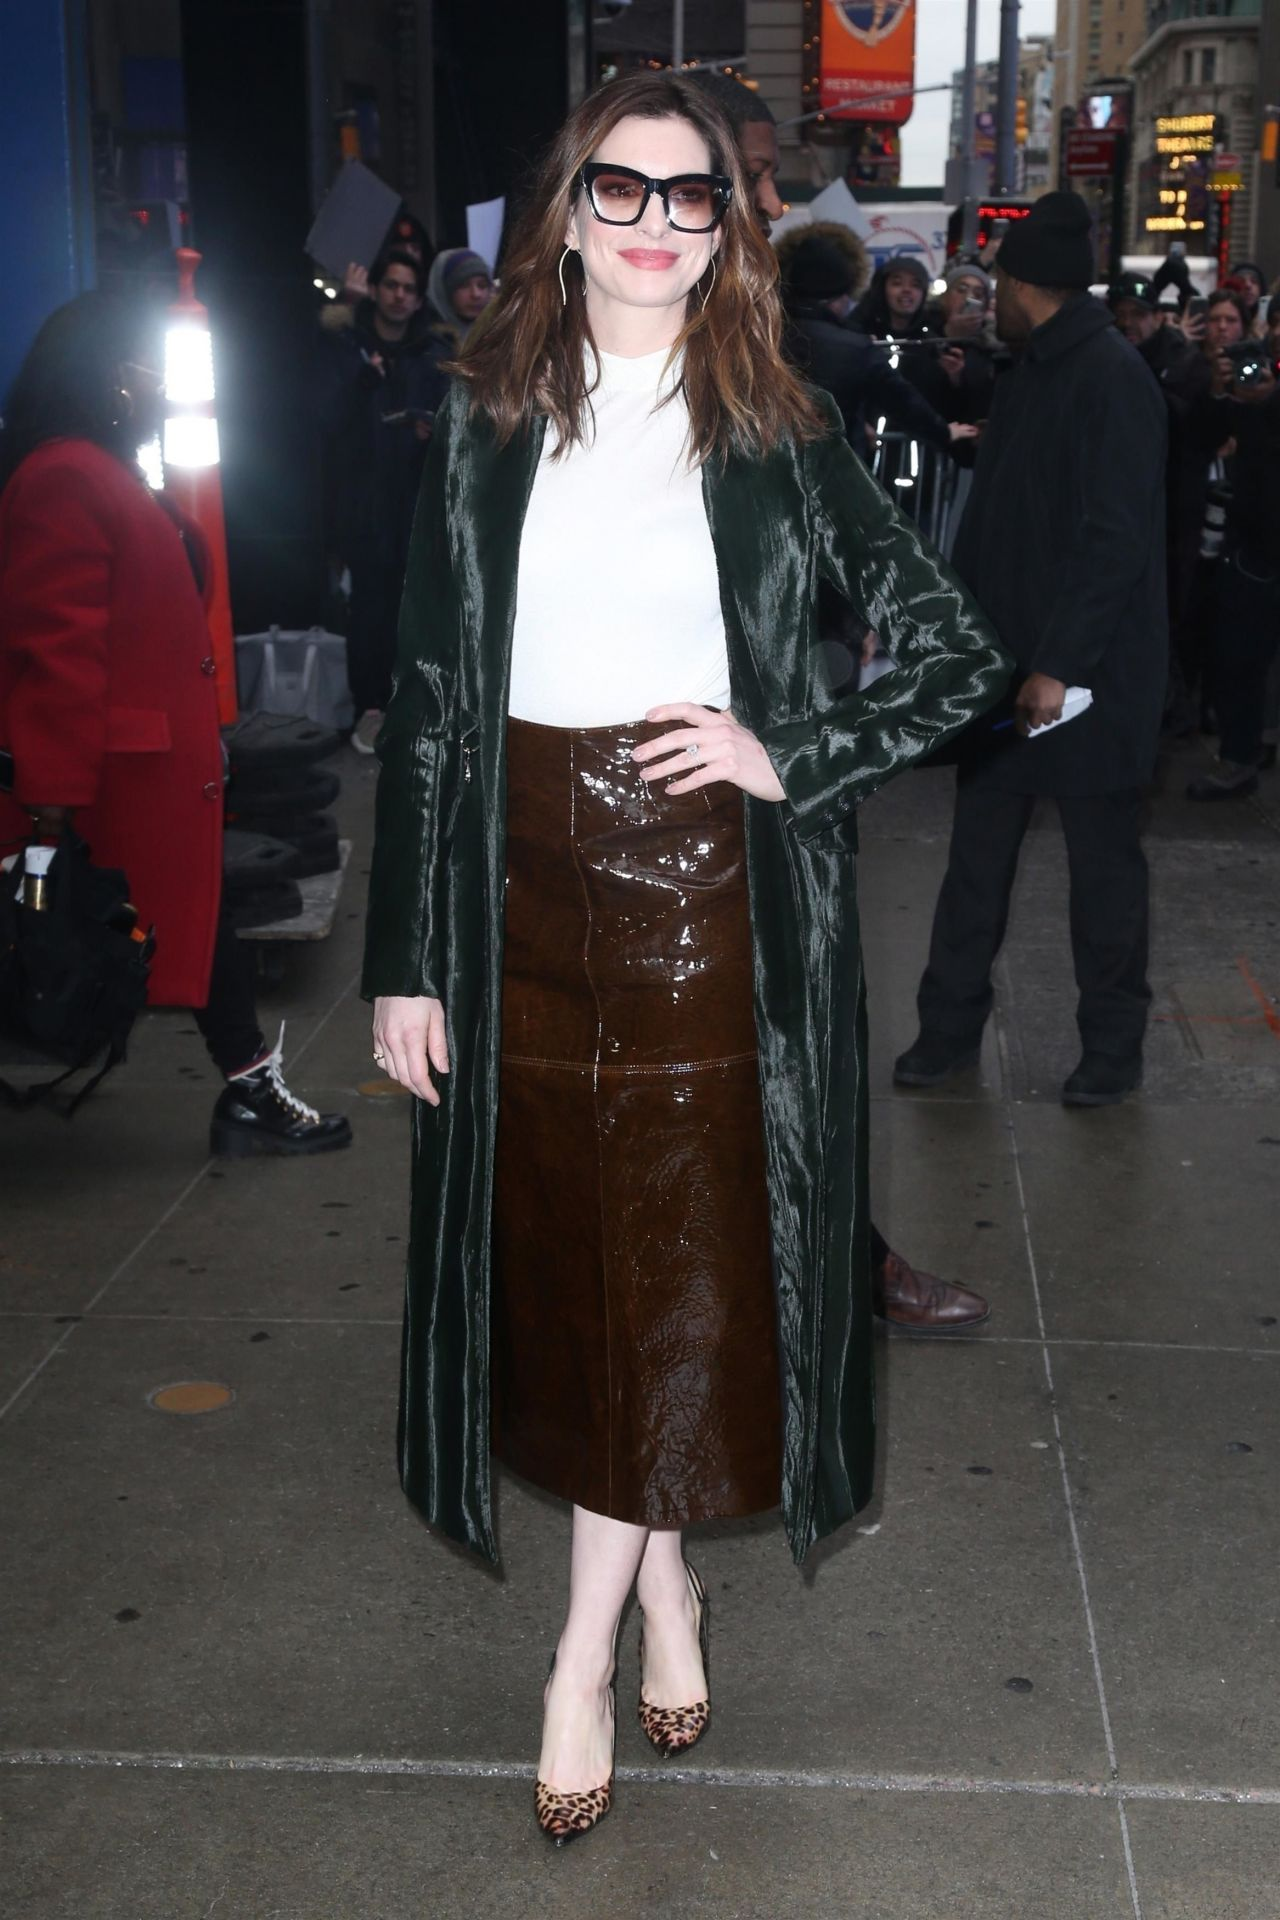 Anne Hathaway Outside Gma In Nyc 01 23 2019